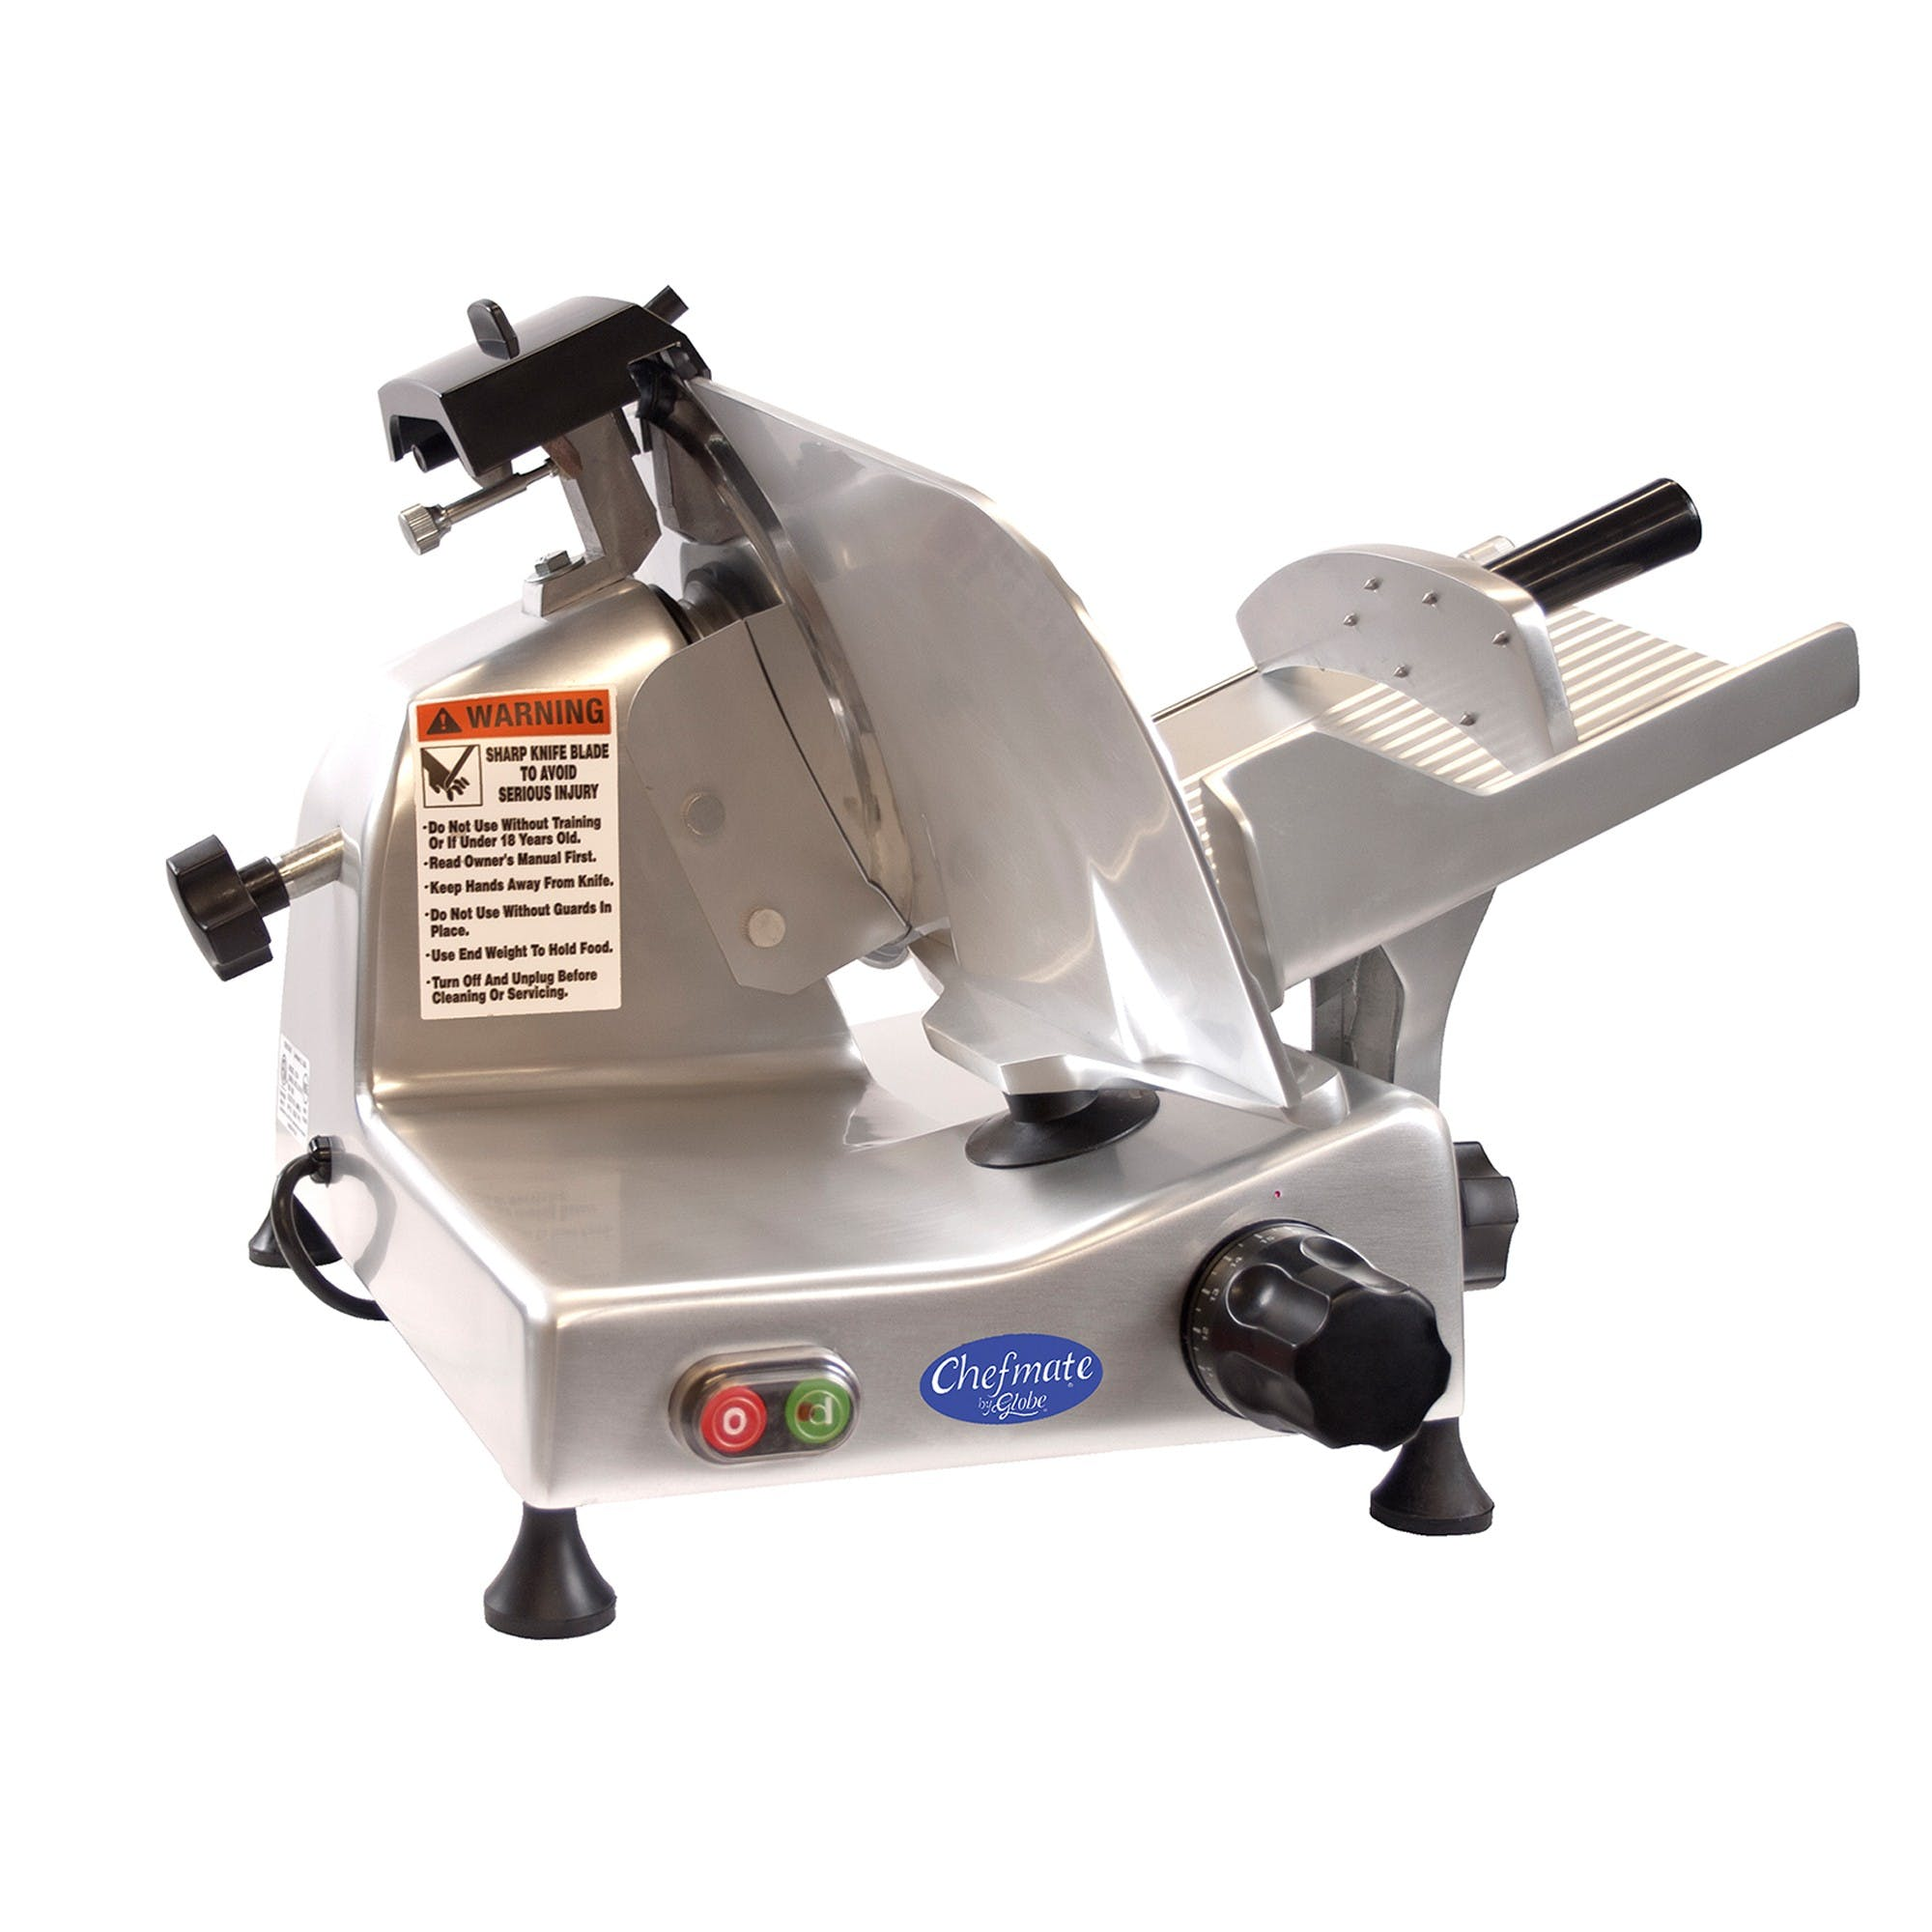 "Globe | E220 | Economy 9"" Light Duty Manual Meat Slicer Meat slicer sold by Mission Restaurant Supply"